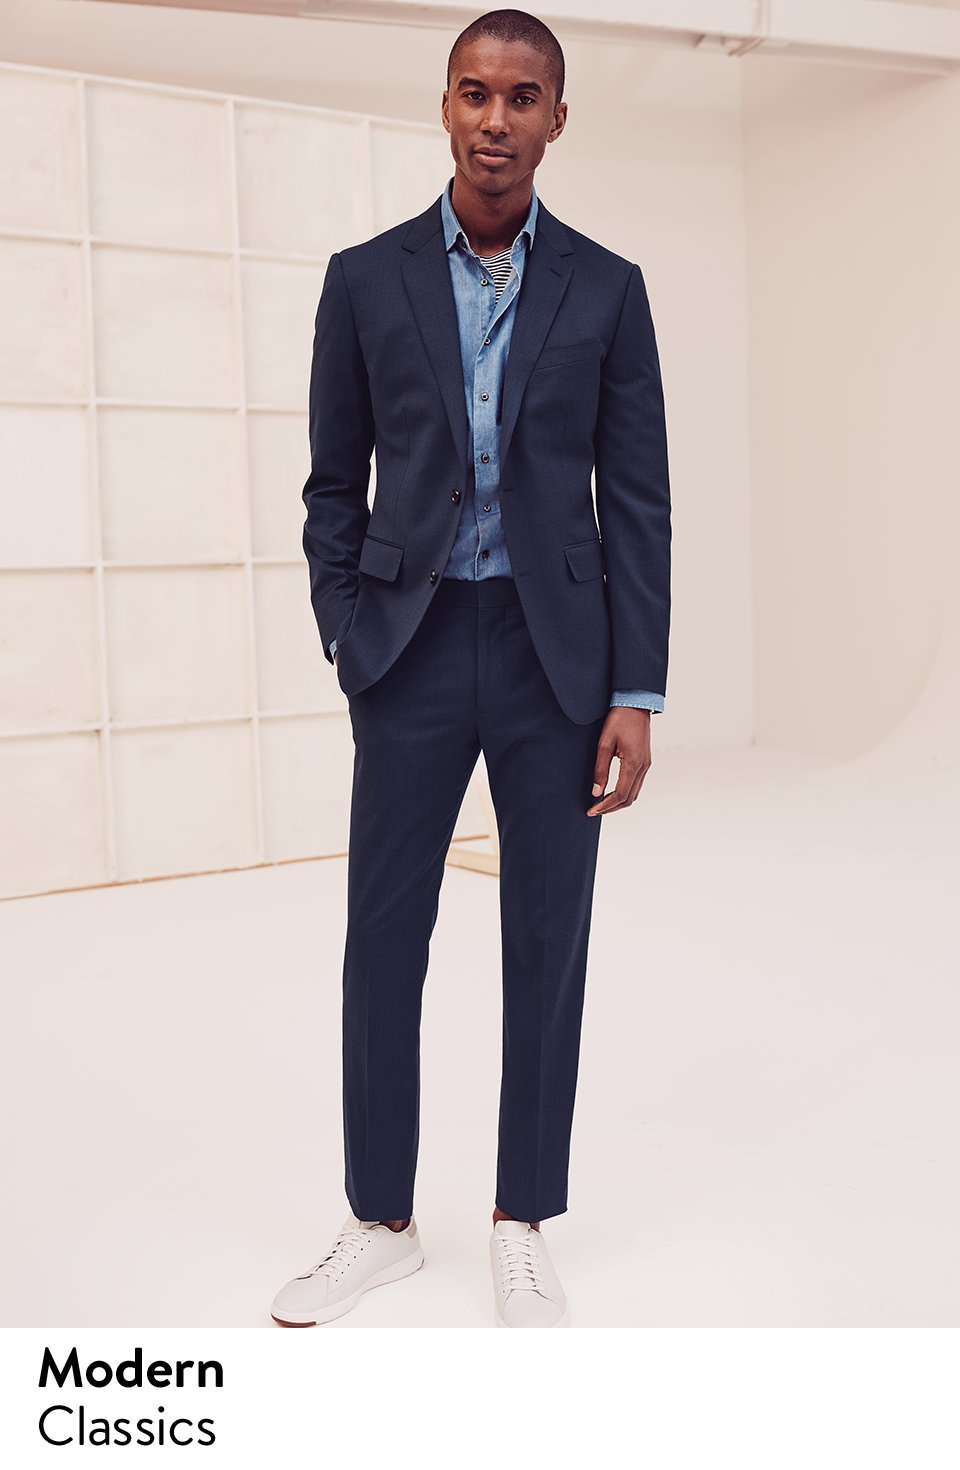 Nordstrom Win At Business Casual Suit Separates Sneakers